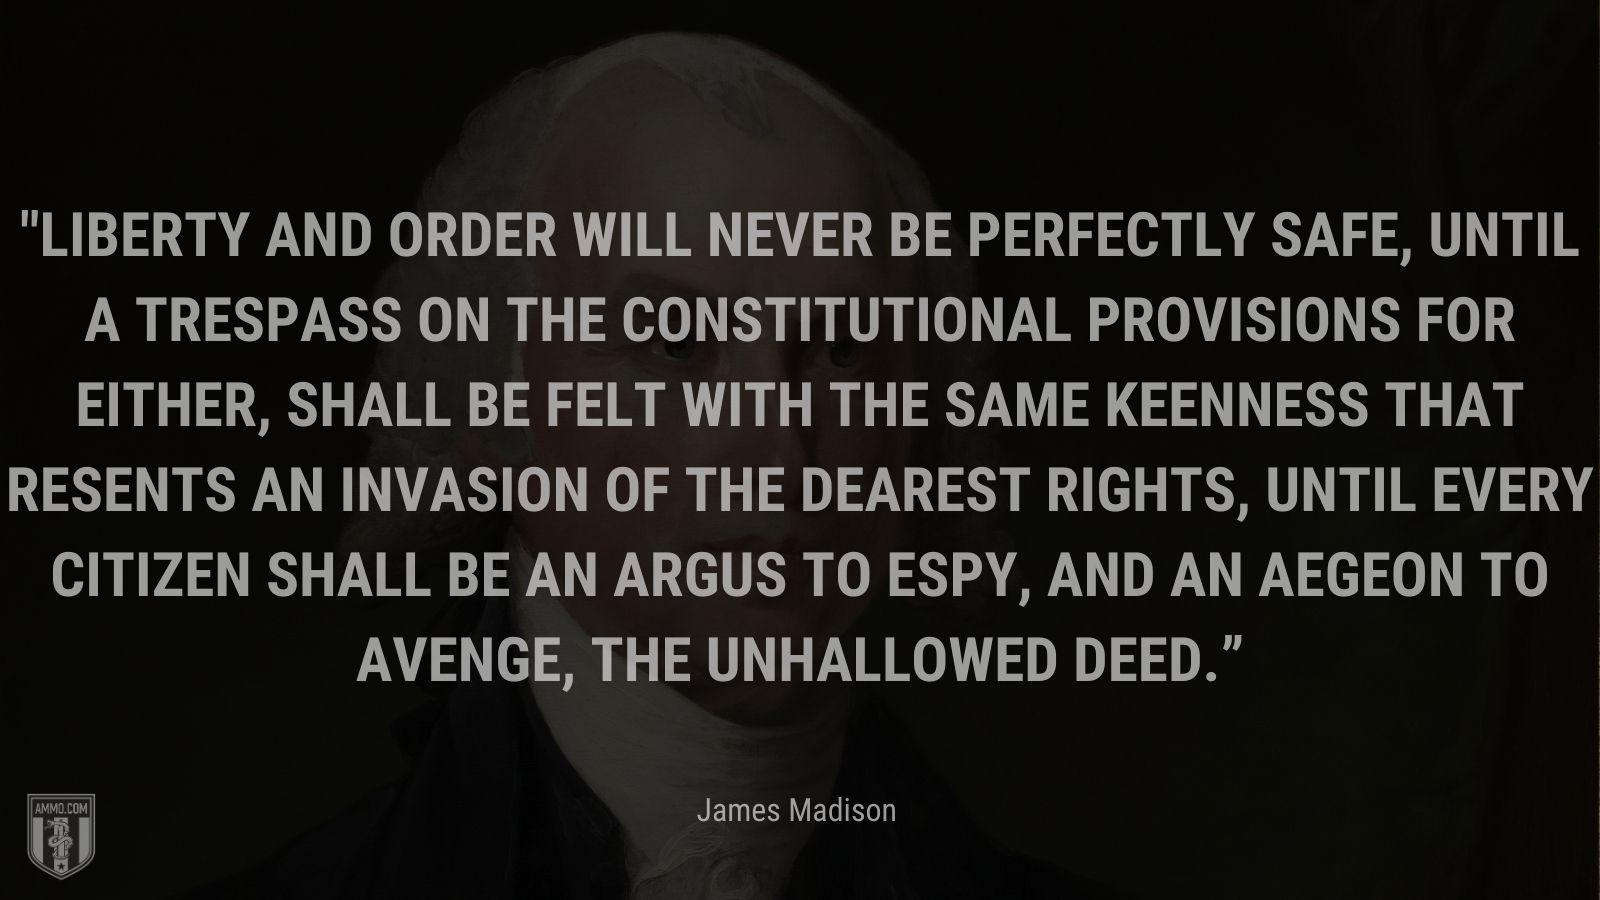 """""""Liberty and order will never be perfectly safe, until a trespass on the constitutional provisions for either, shall be felt with the same keenness that resents an invasion of the dearest rights, until every citizen shall be an Argus to espy, and an Aegeon to avenge, the unhallowed deed."""" - James Madison"""